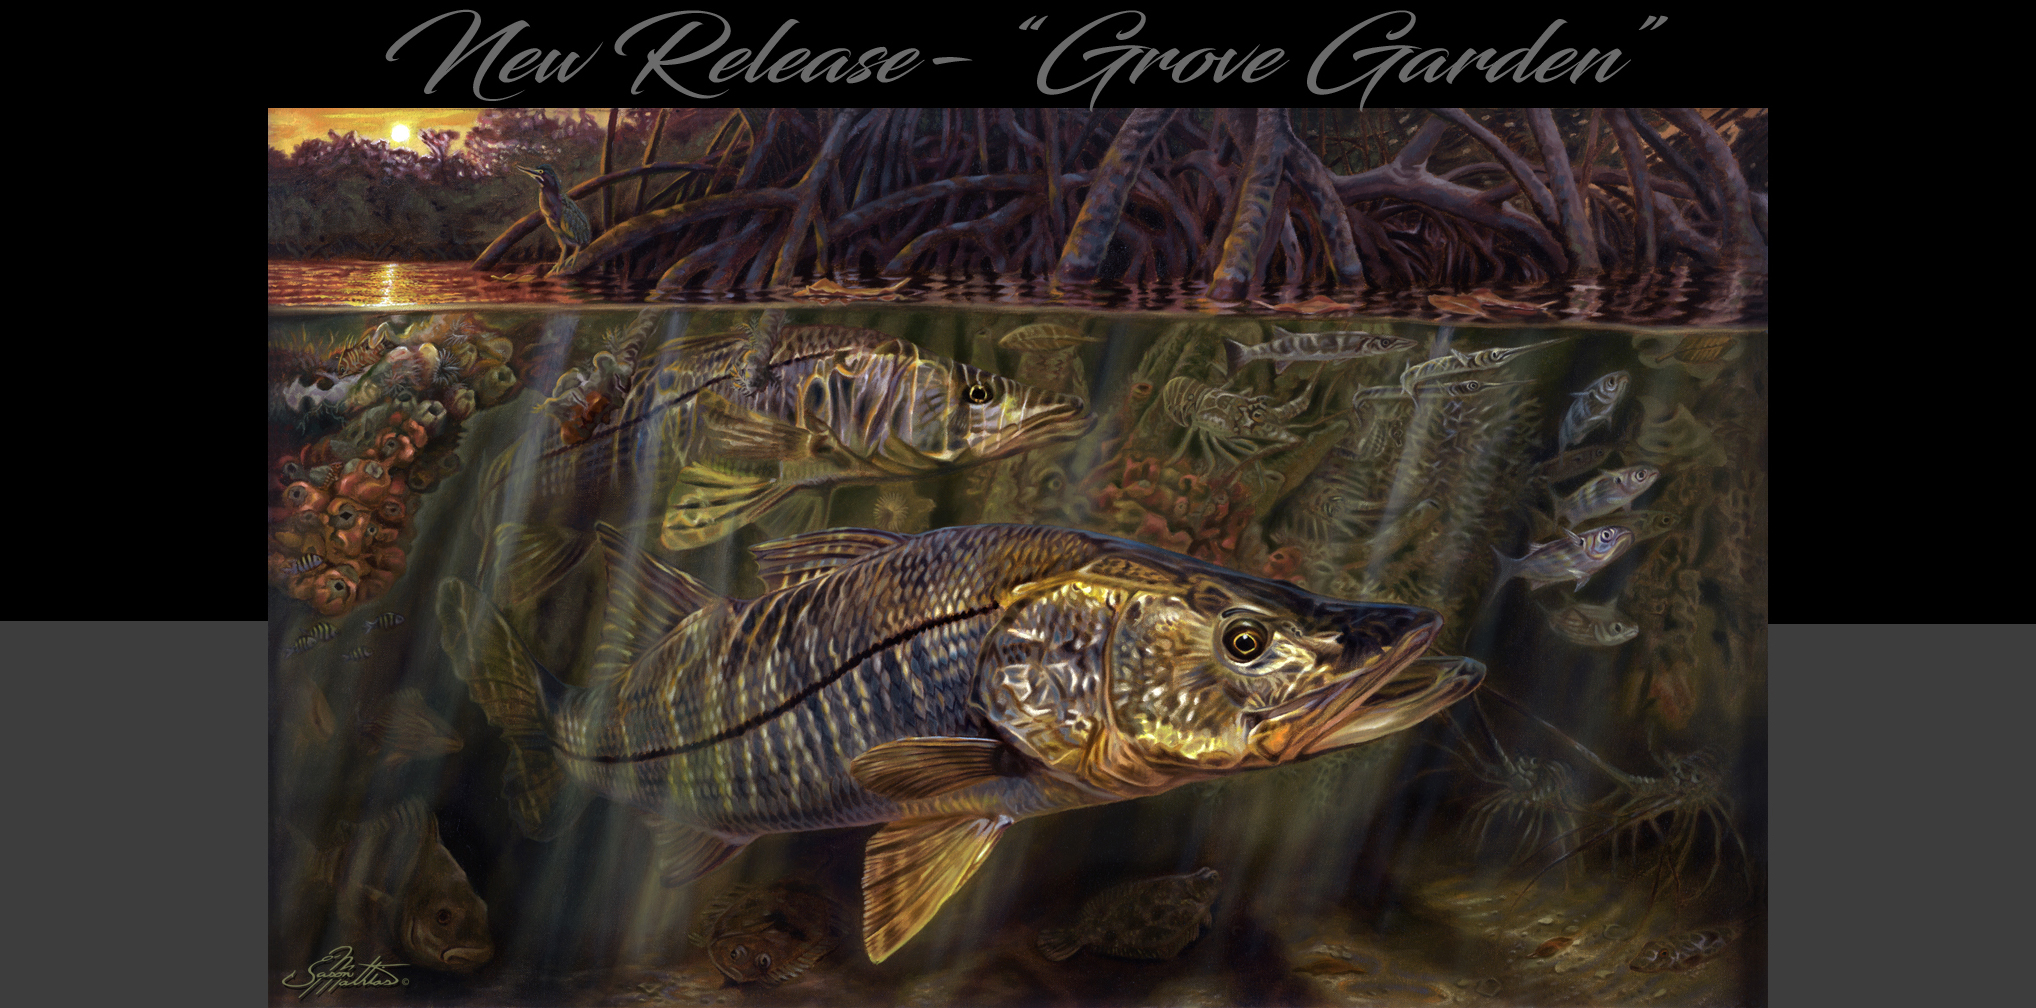 Snook, painting, art, underwater, mangroves, sunset, sunrise, jason, mathias, grove, garden, sportfish, gamefish, fishart, marine, art, master, best, classical, wildlife, habitiat, estuary, intercoastal, inshore, ecosystem